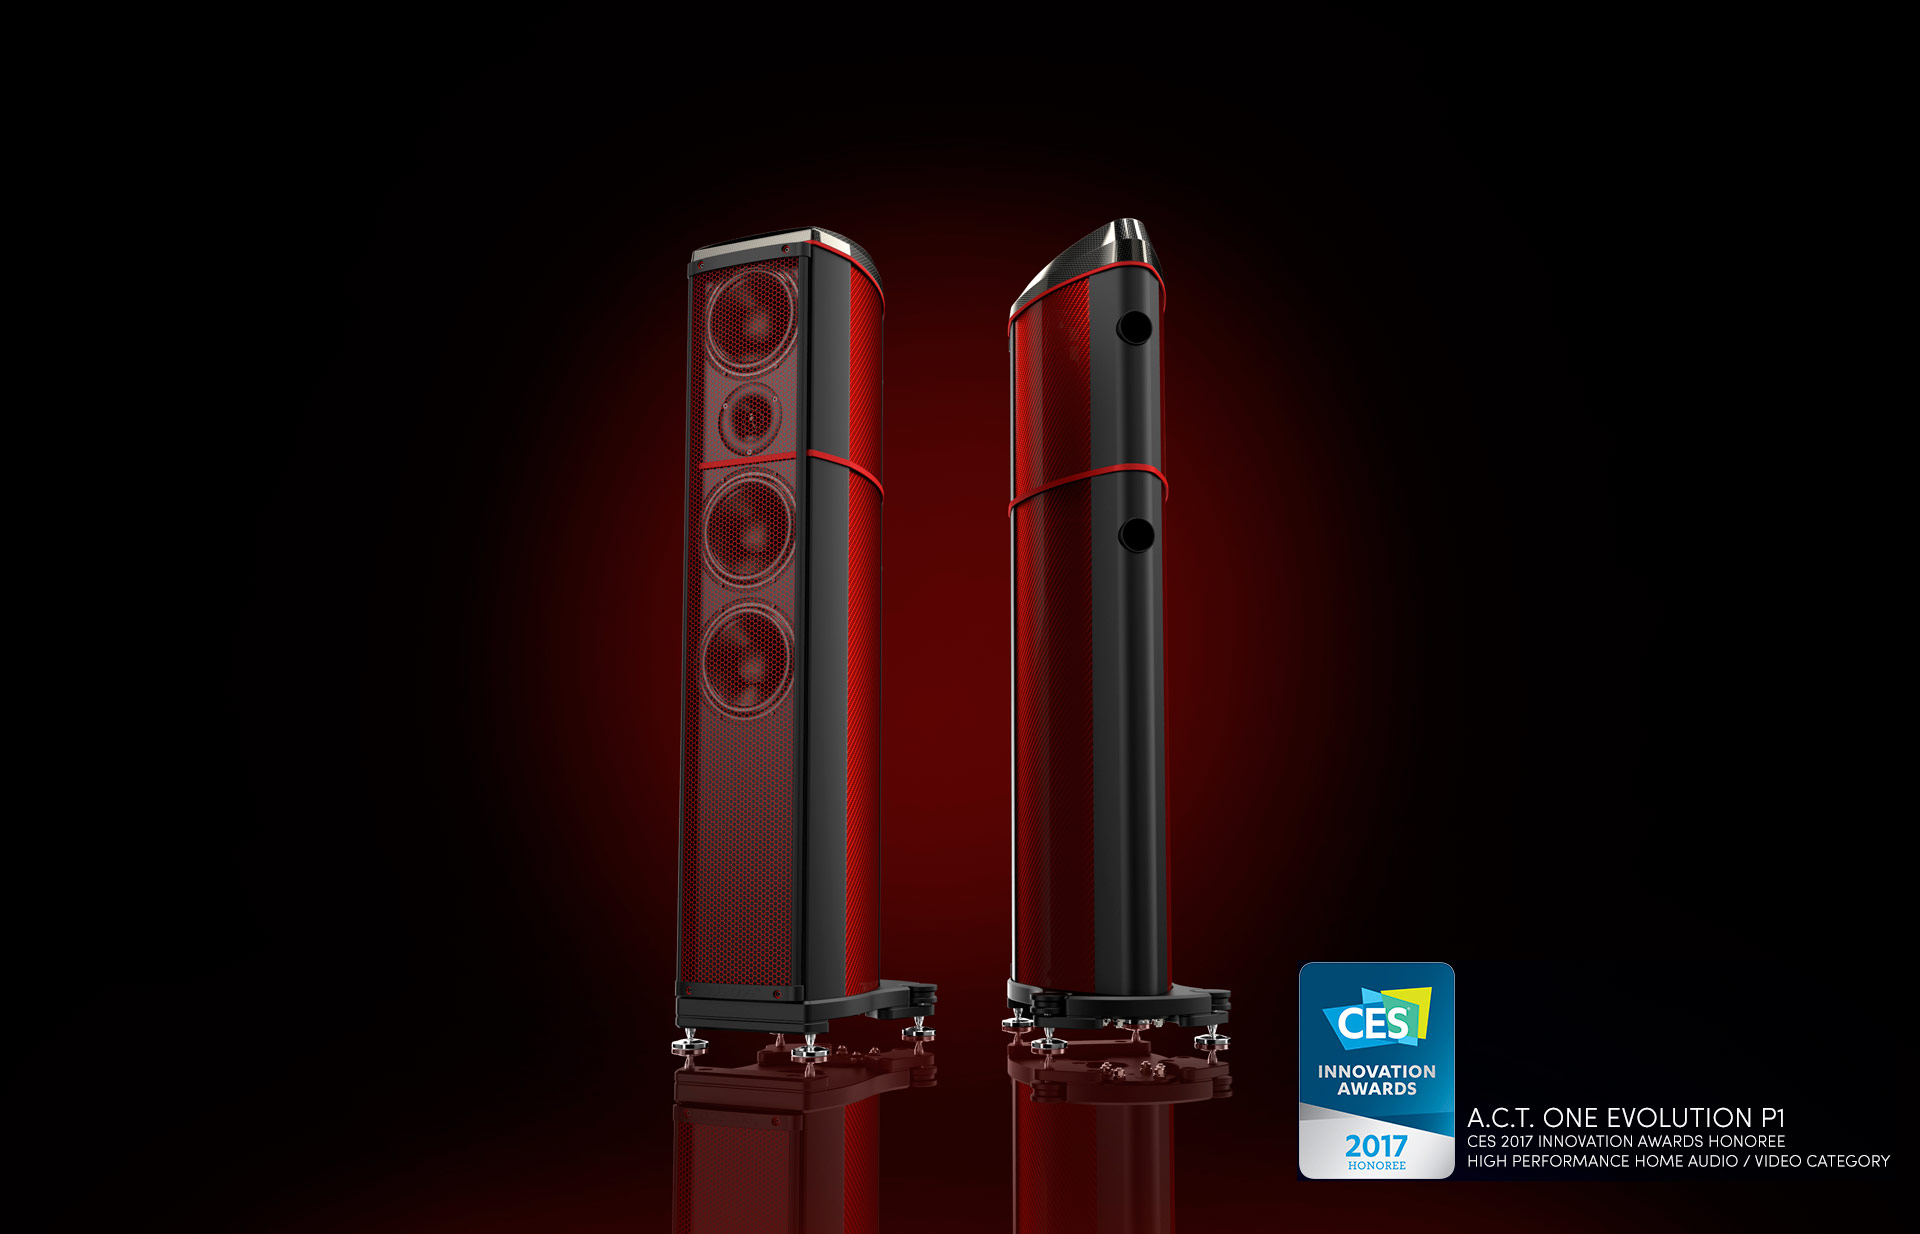 Andreas Wenderoth - A.C.T. One Evolution - Loudspeaker - Coloured - Carbon Fibre - British - Engineering - Innovation - Image Hifi